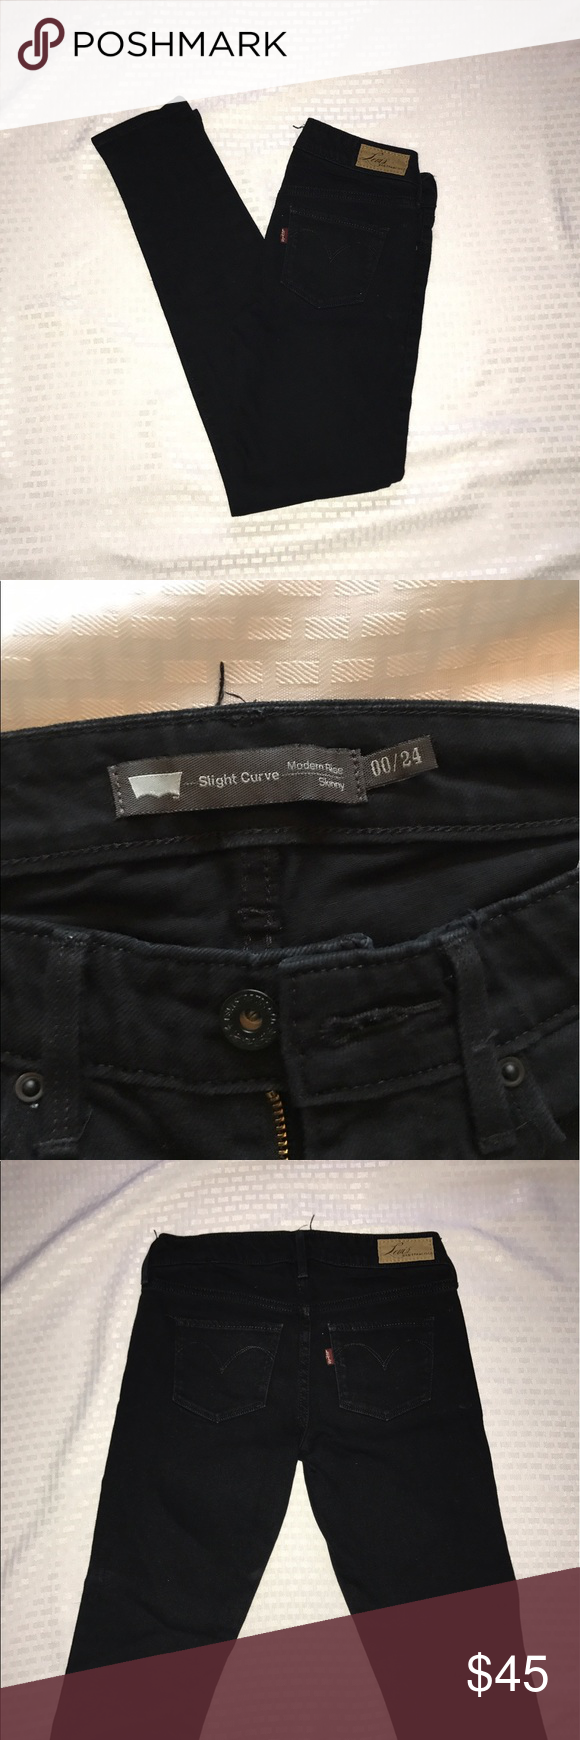 Levi's Black Modern Rise Skinny Jeans Levi's Black Modern Rise Skinny Jeans  Black Denim Jeans  Size 00/24  Gently Used Levi's Jeans Skinny